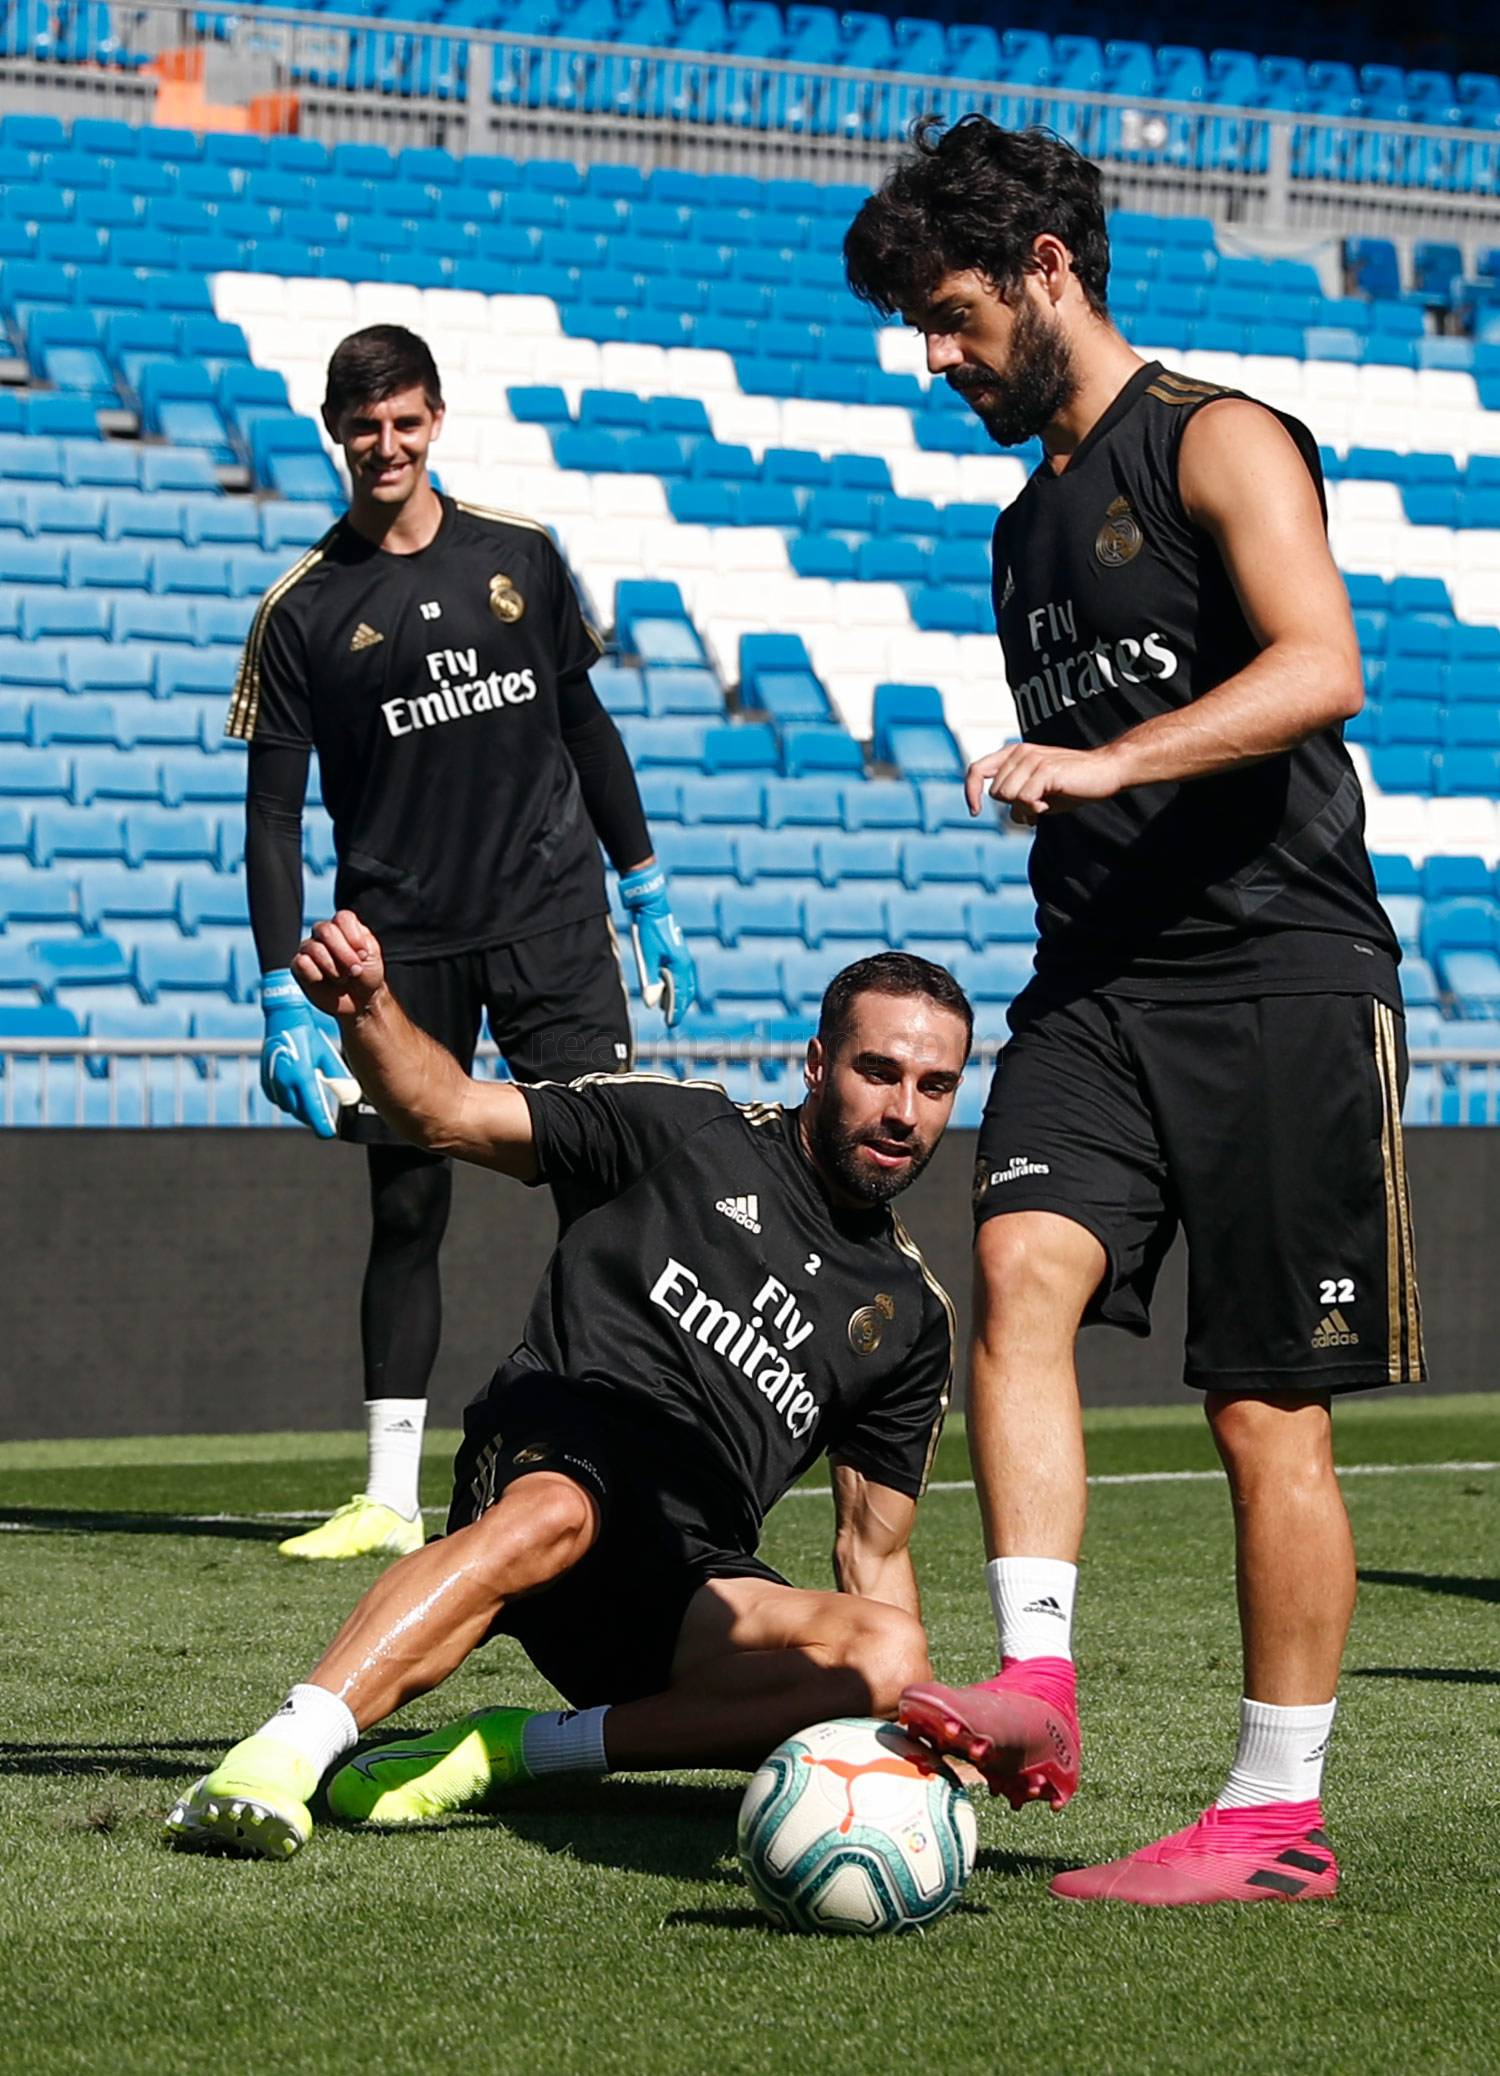 Real Madrid - Entrenamiento del Real Madrid  - 22-08-2019